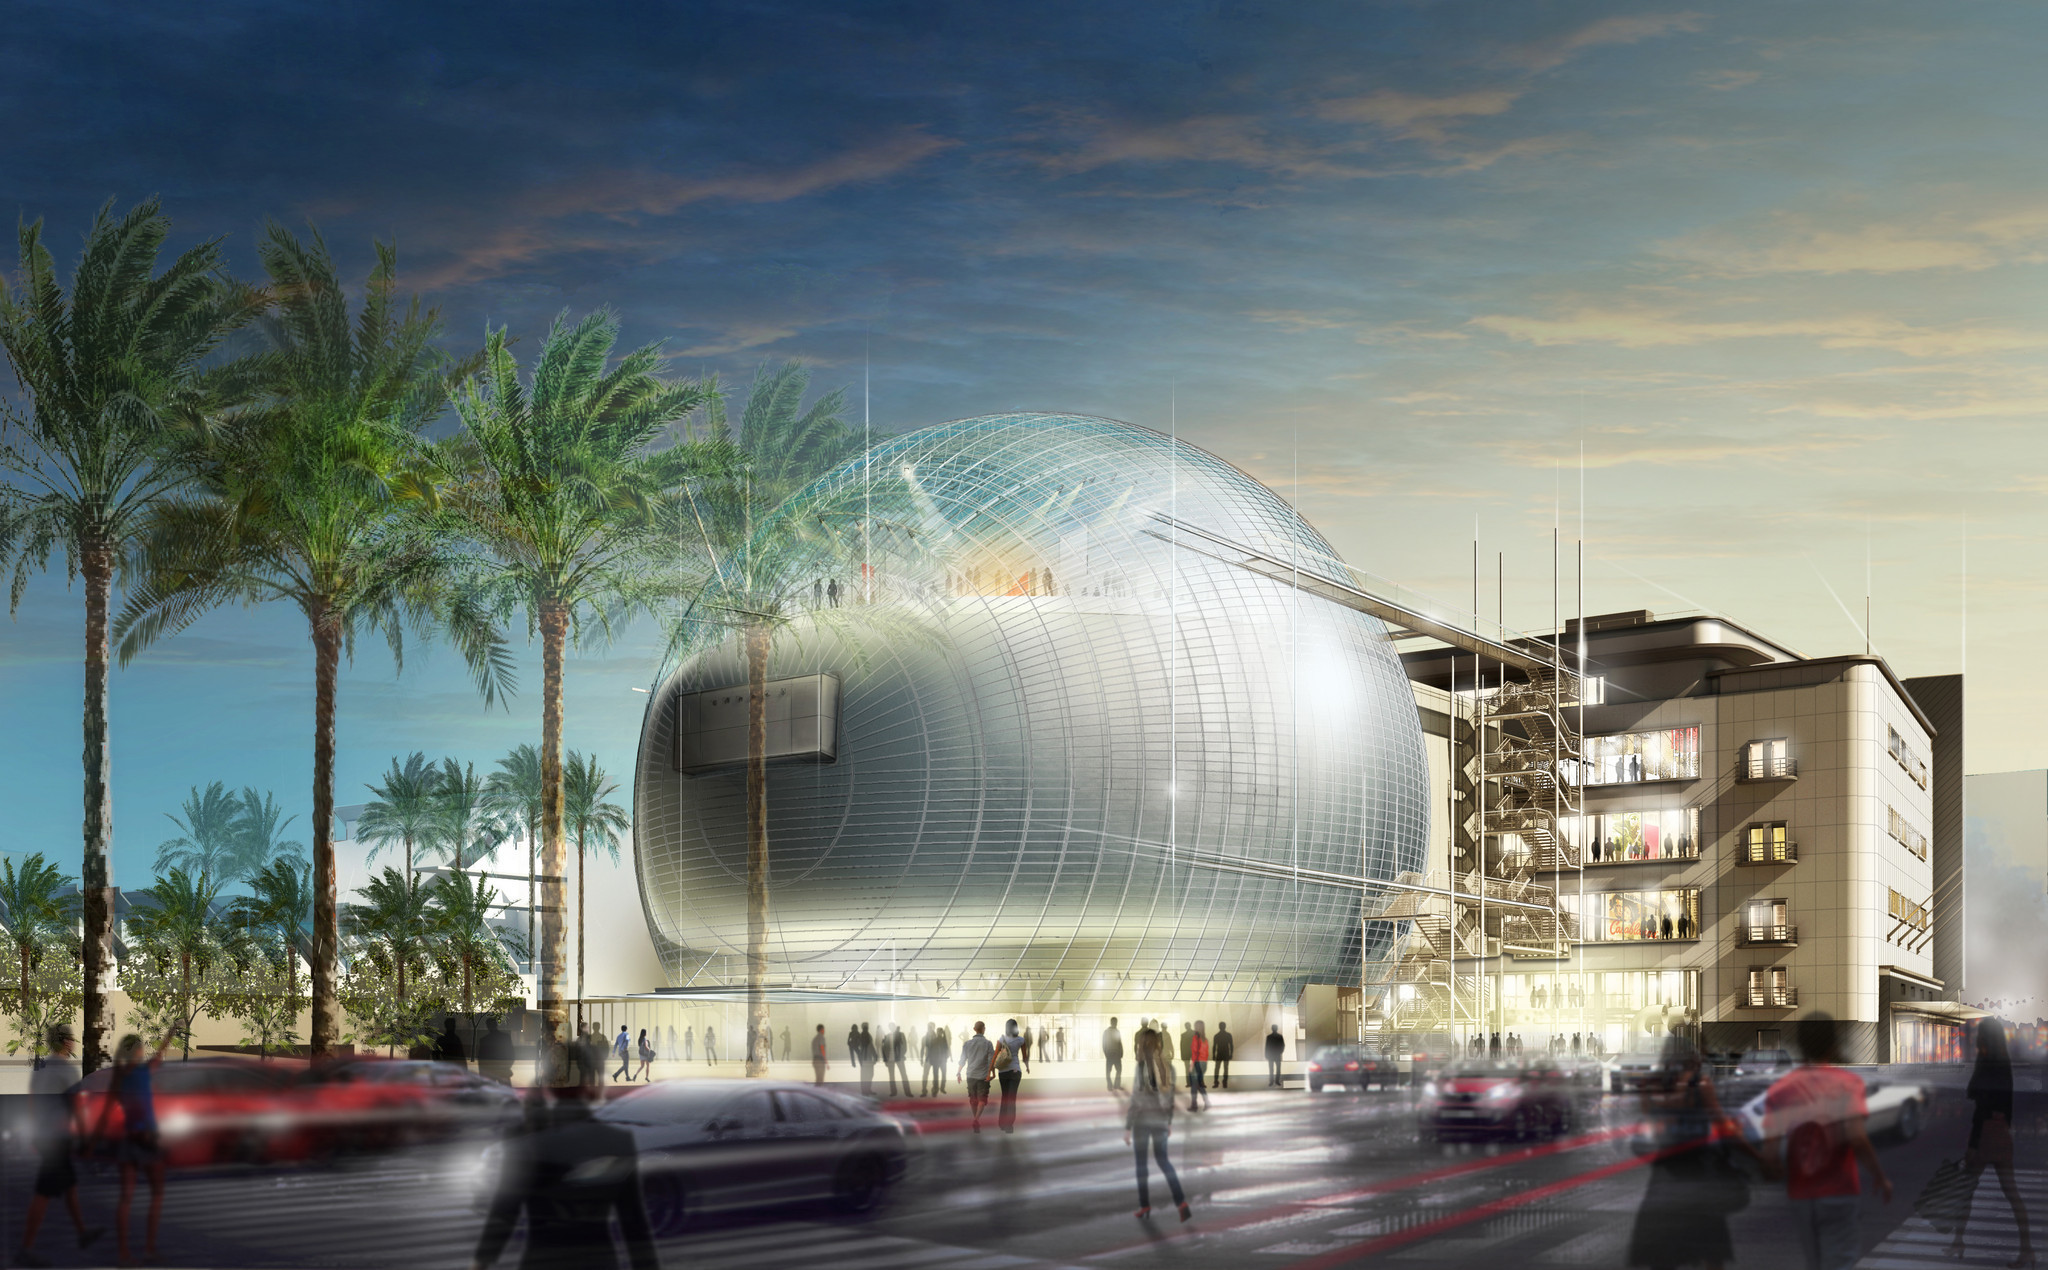 Renzo piano defends academy museum plans la times for Craft workshops los angeles